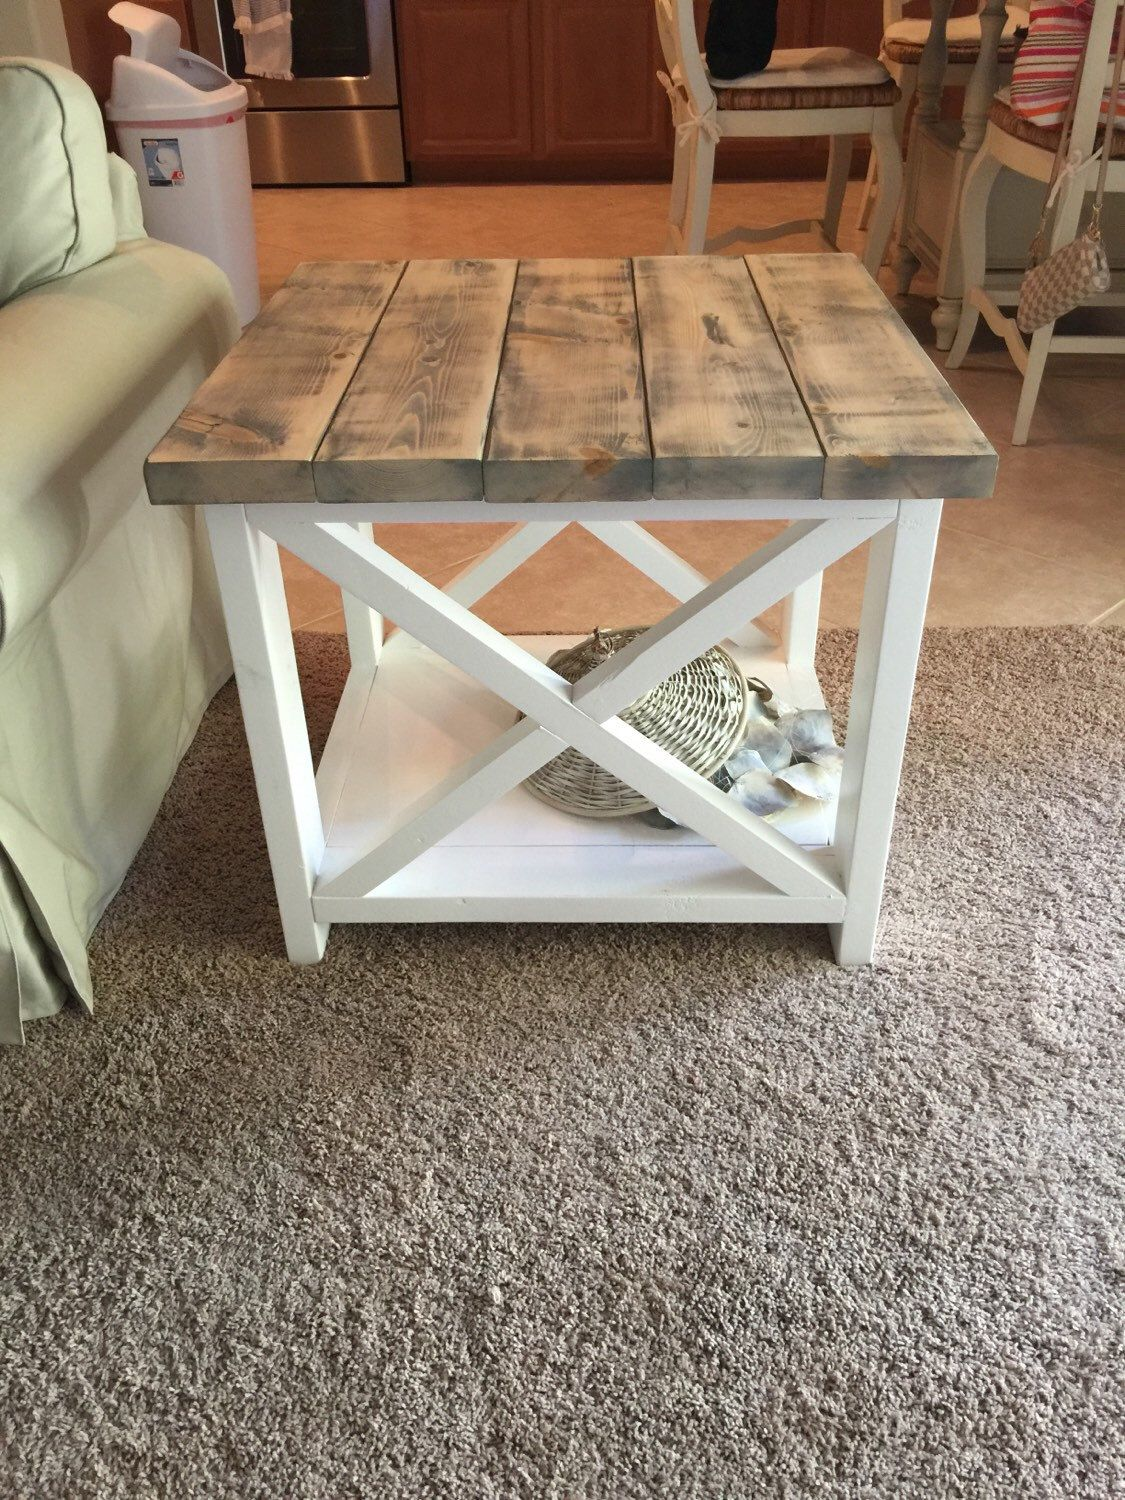 custom rustic farmhouse end table diy house awesome best living room decor ideas source link doitdecor night stand plastic coffee leaf modern side design gray distressed furniture